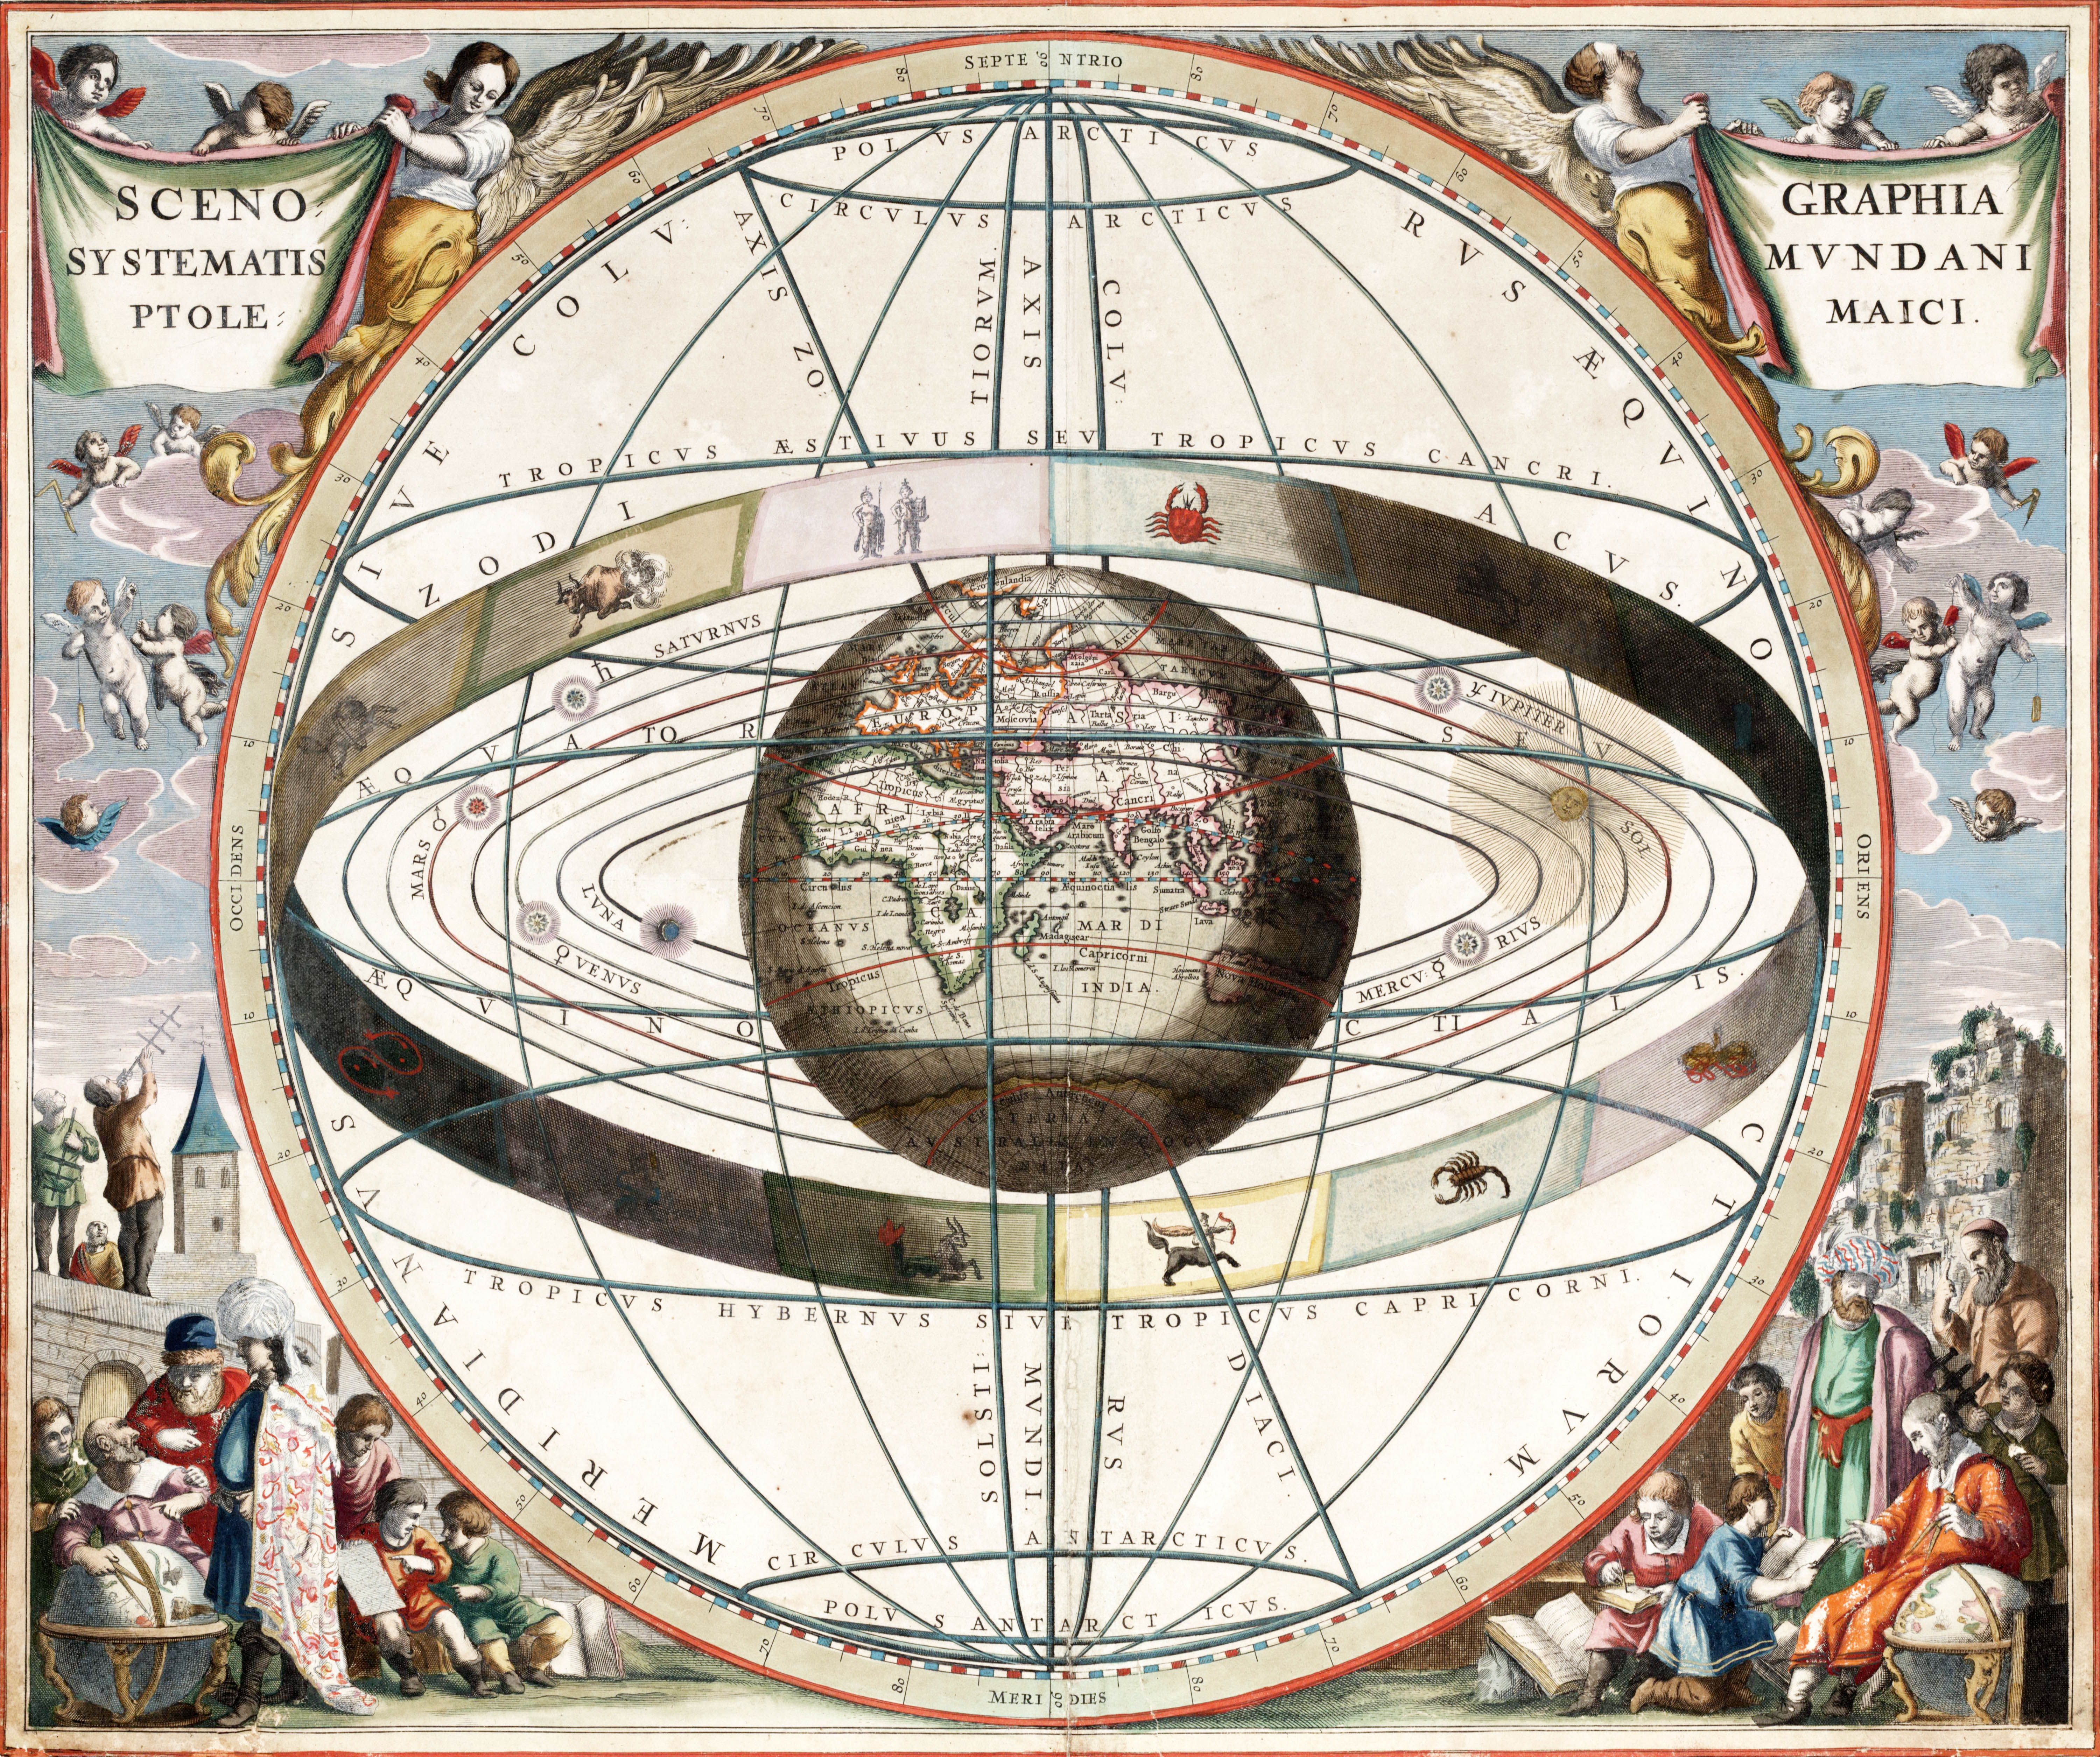 File:Cellarius ptolemaic system c2.jpg - Wikipedia, the free ...